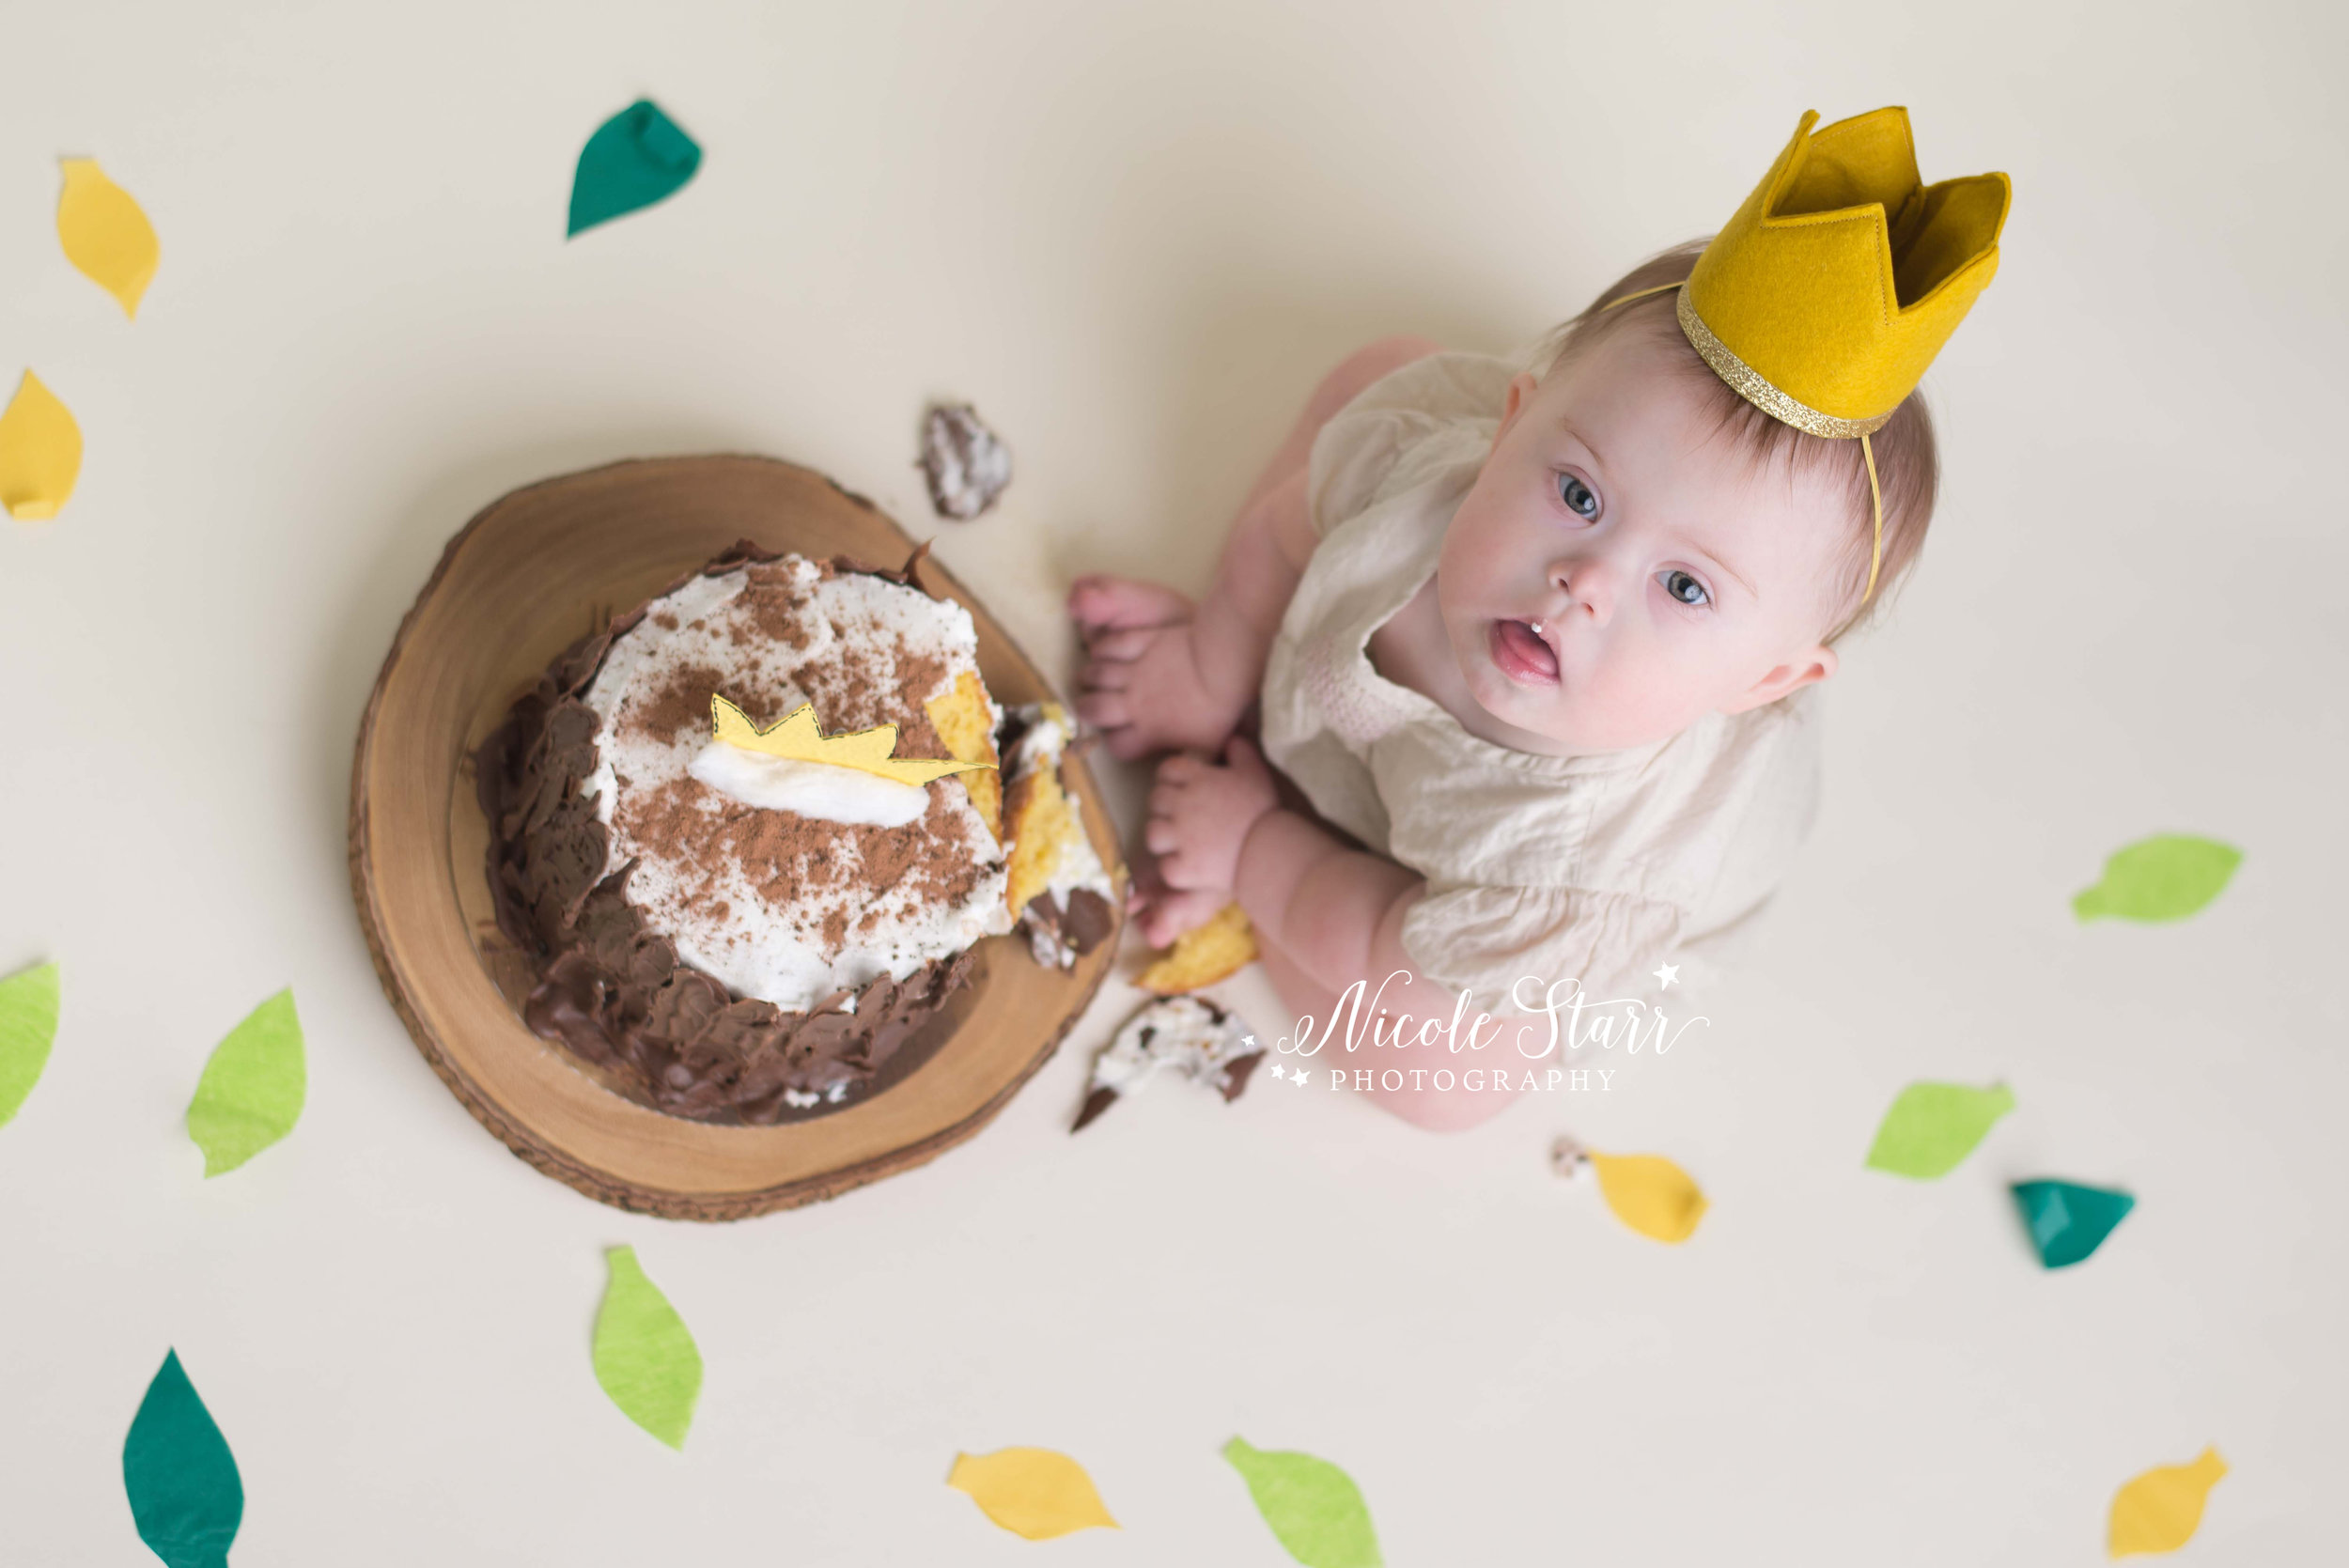 where the wild things are cake smash nicole starr photography.jpg